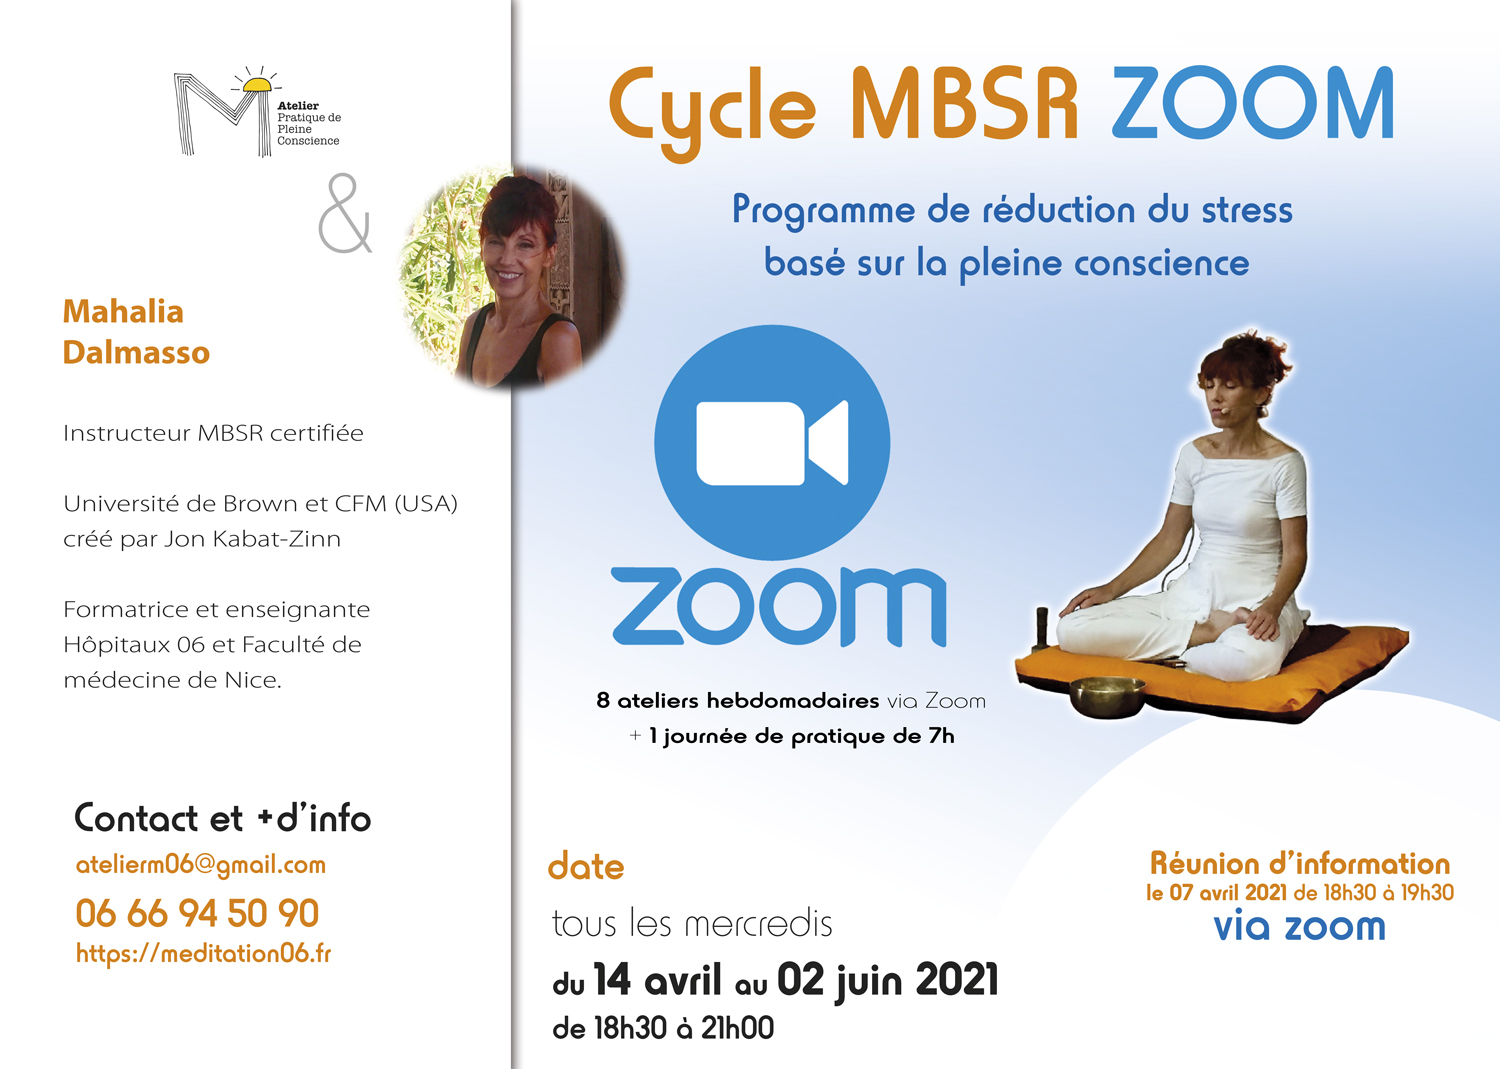 flyer cycles MBSR zoom avril mai 2021